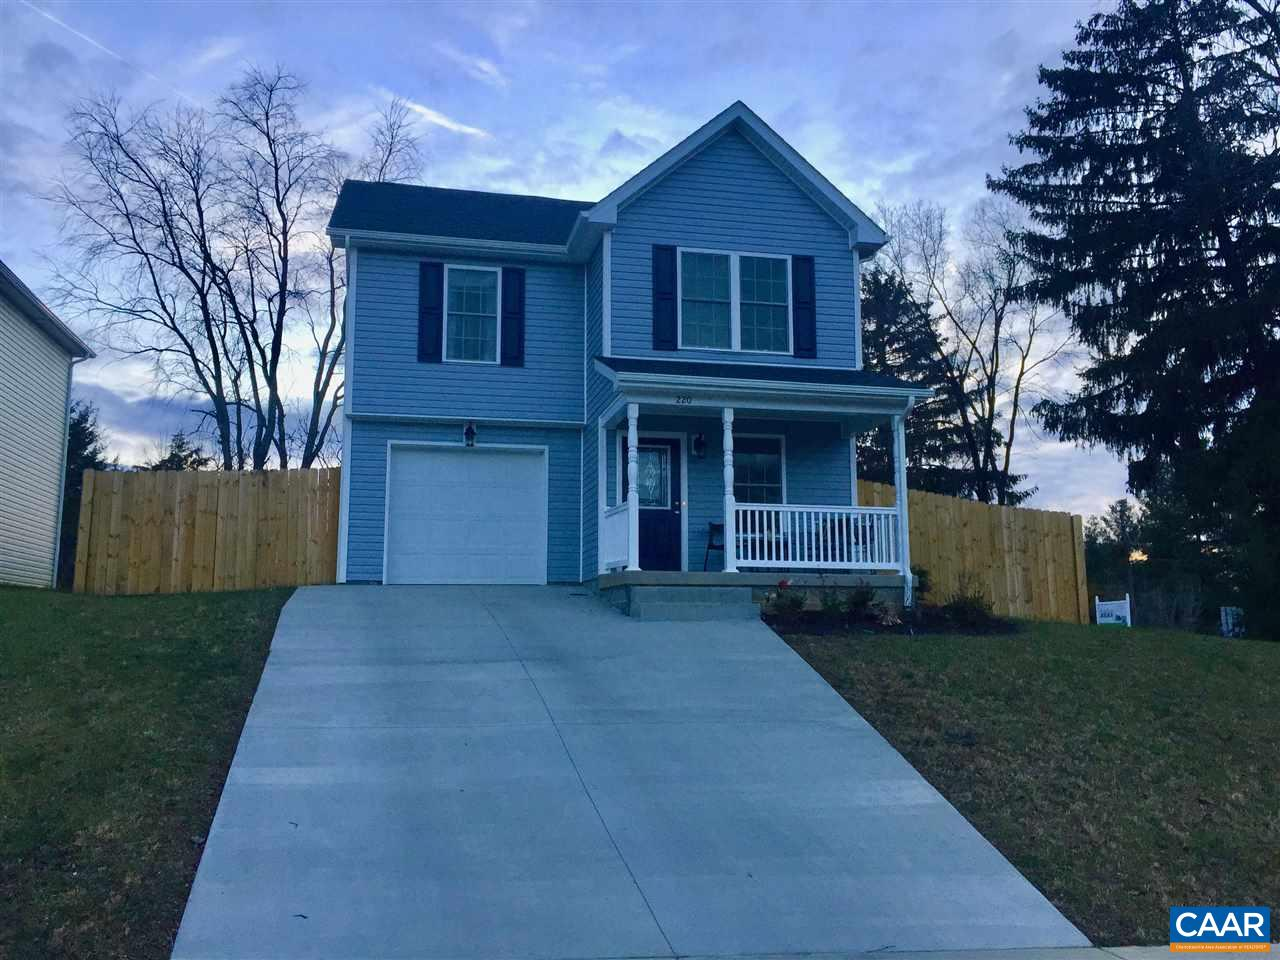 Single Family Home for Sale at 220 OVERVIEW Street Waynesboro, Virginia 22980 United States